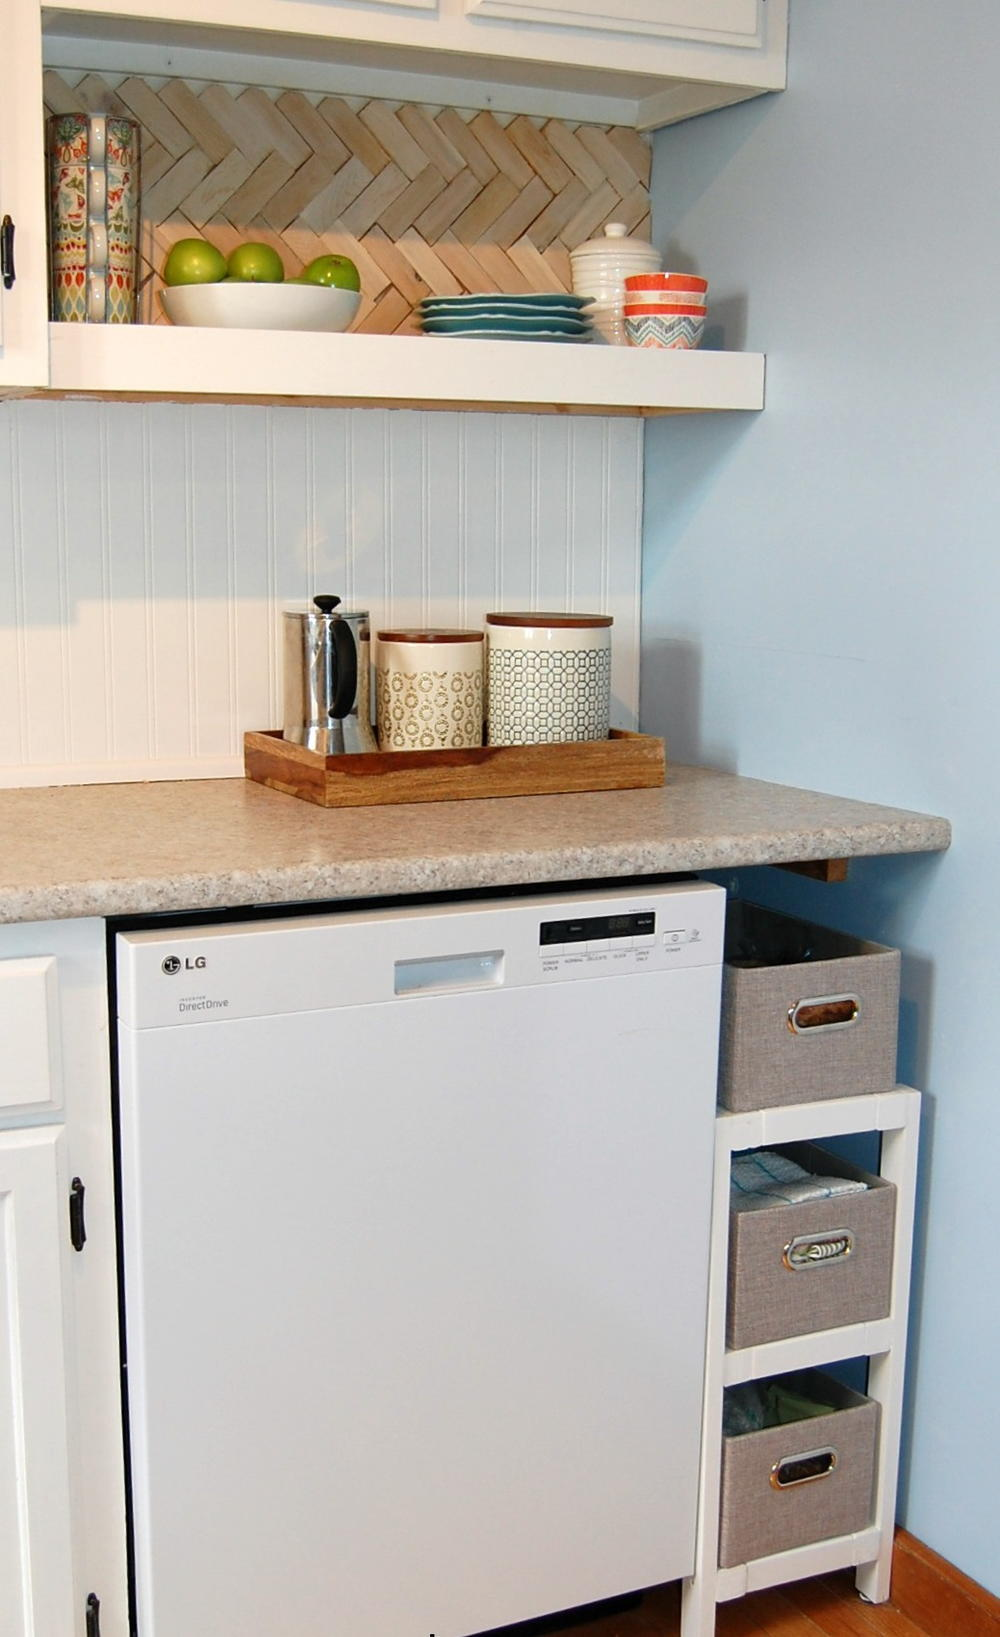 Kitchen Solution Diy Storage Shelf Diyideacenter Com